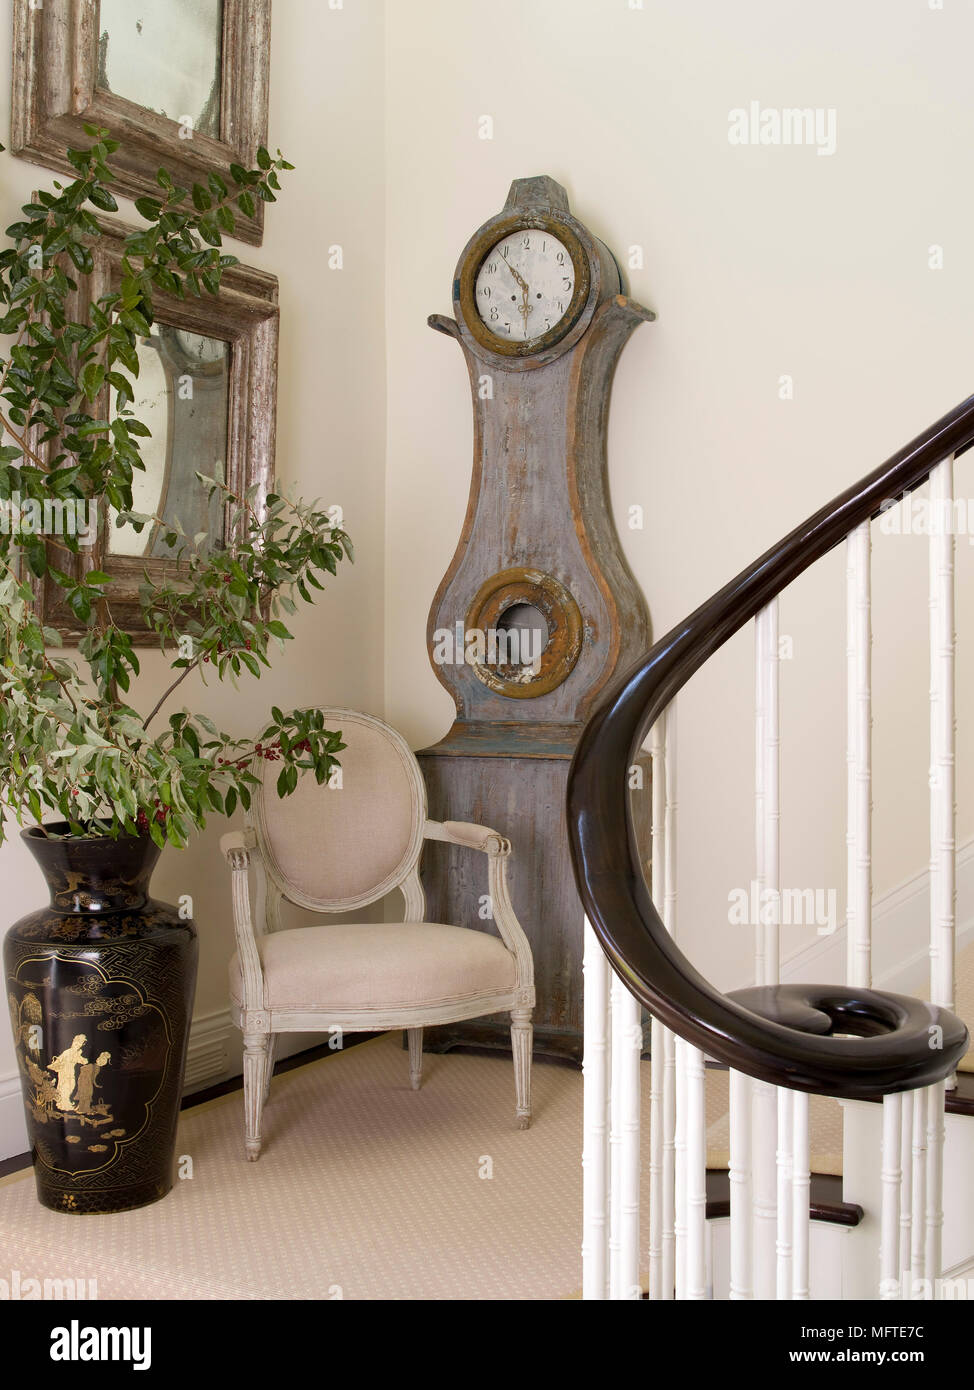 Period Style Chair In Front Of Gustavian Style Clock In Hallway